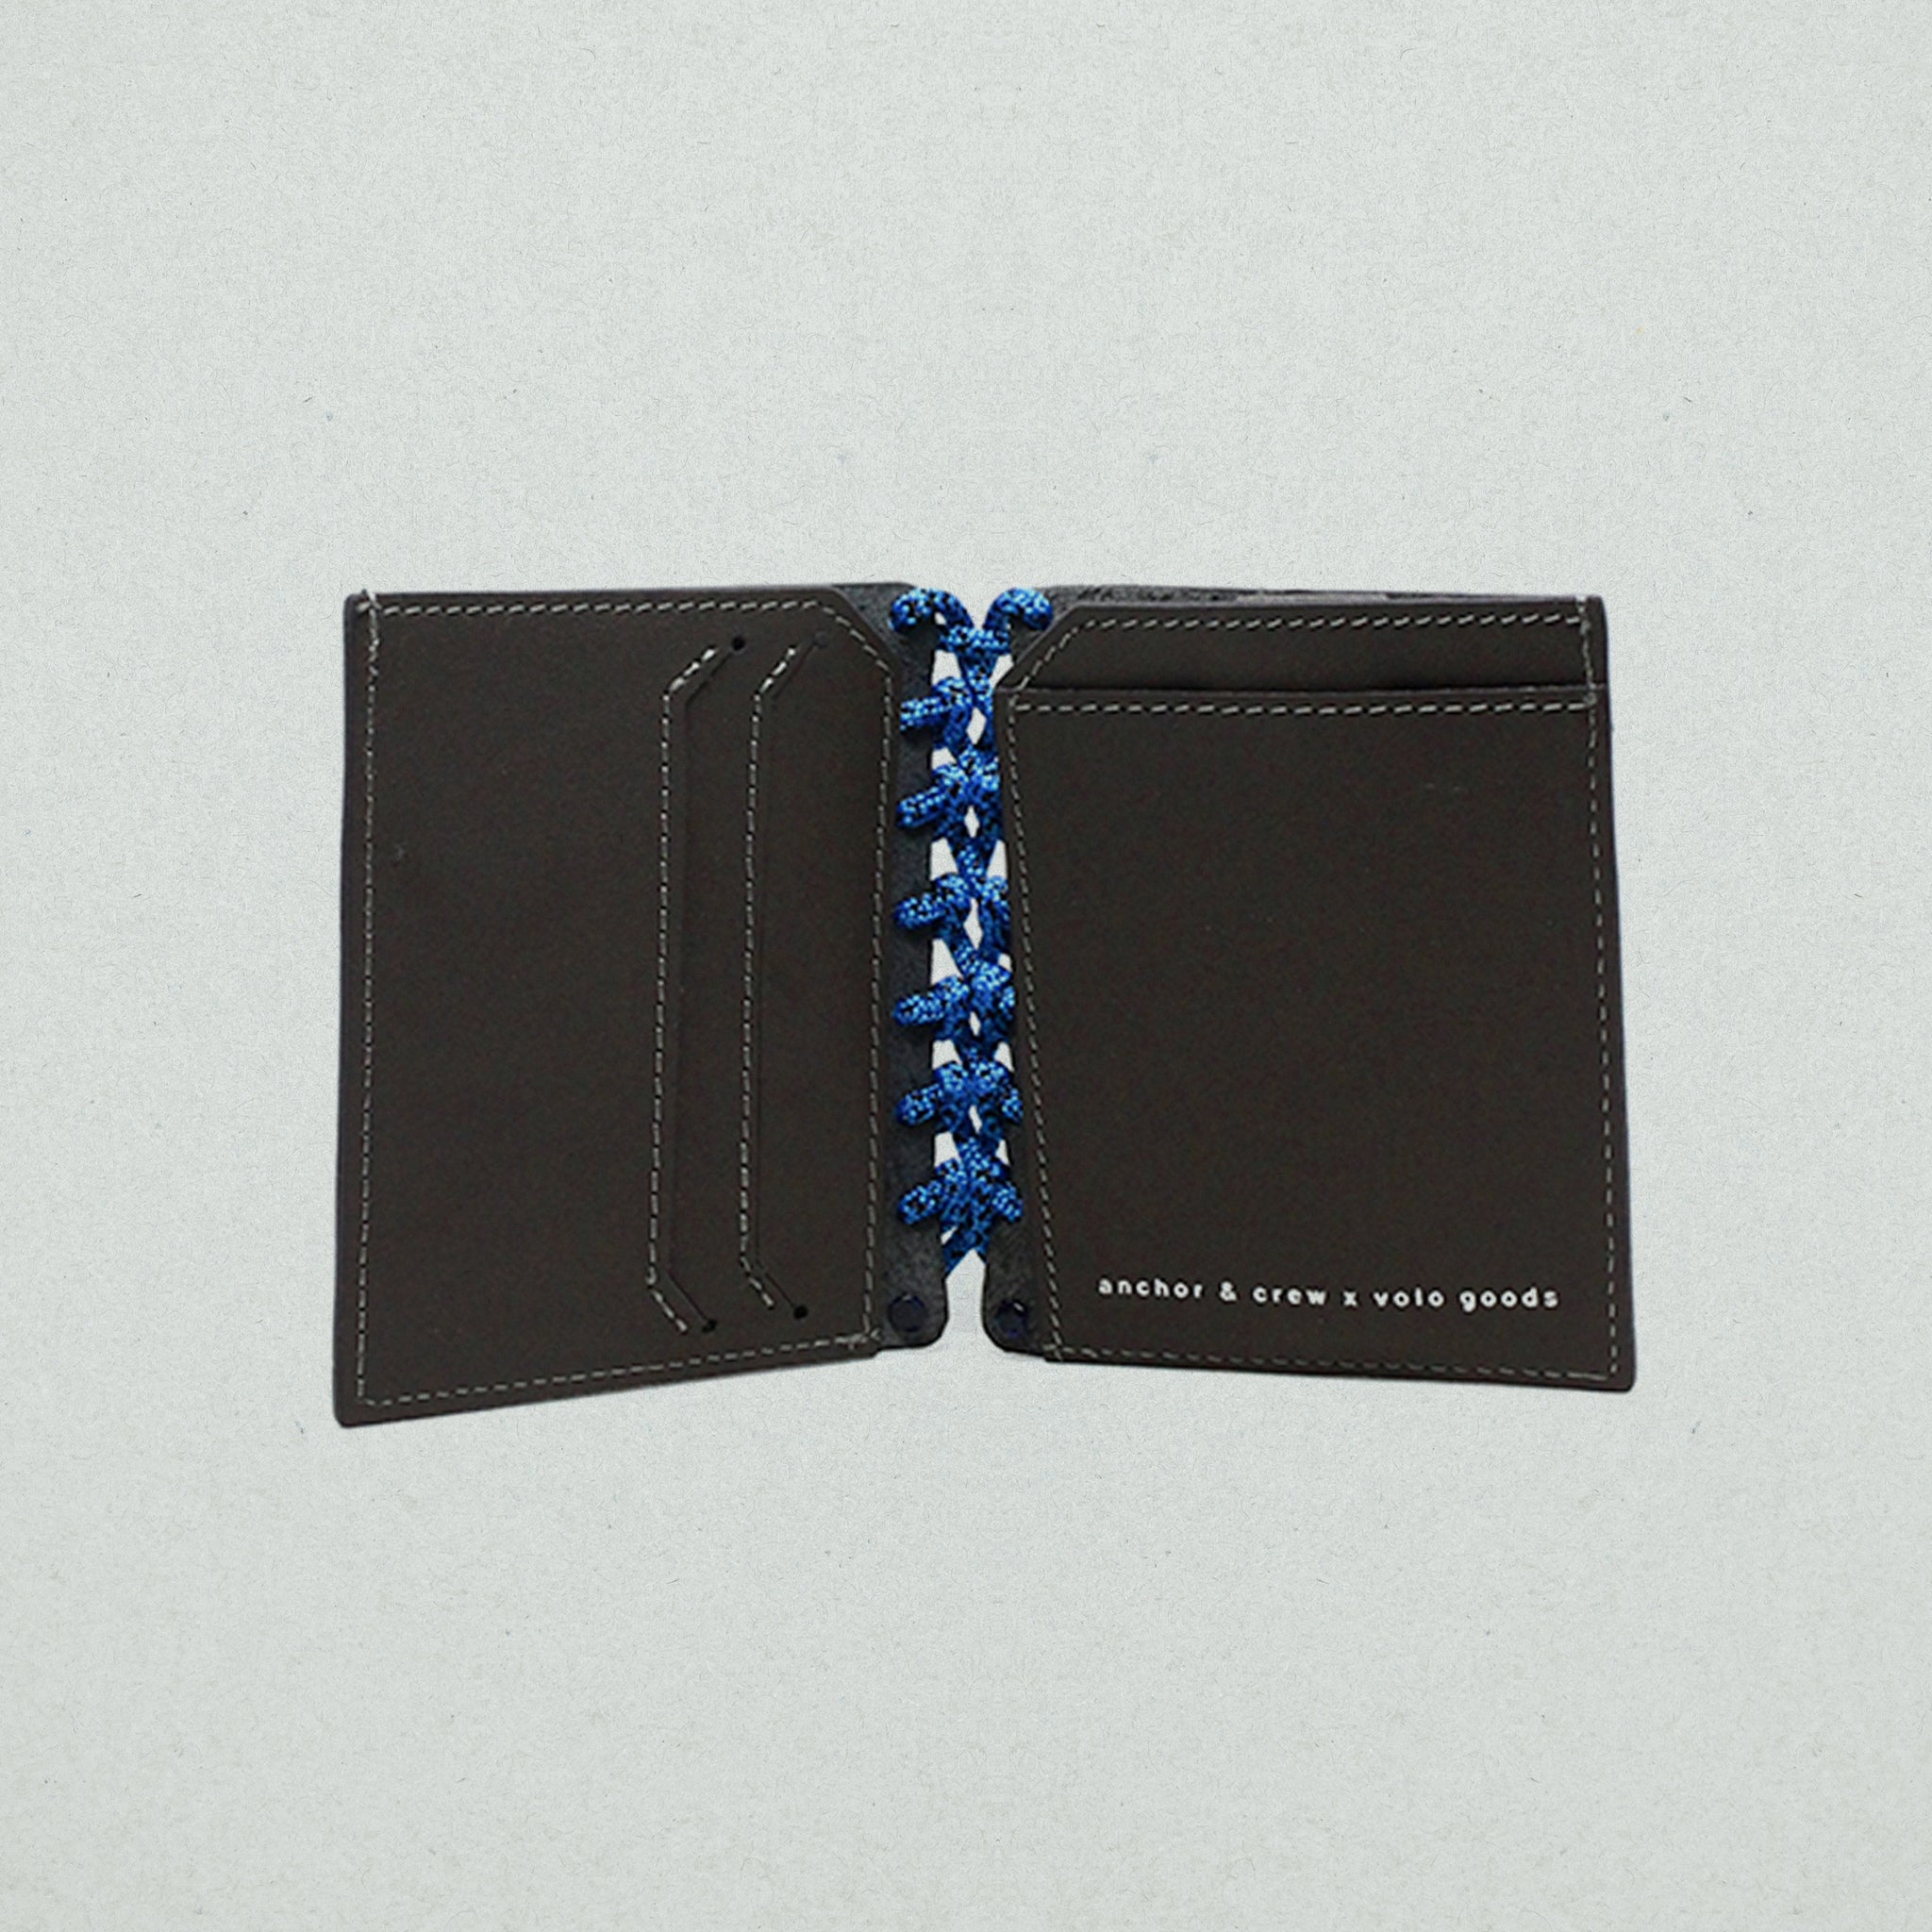 FELRIGG LEATHER & ROPE WALLET